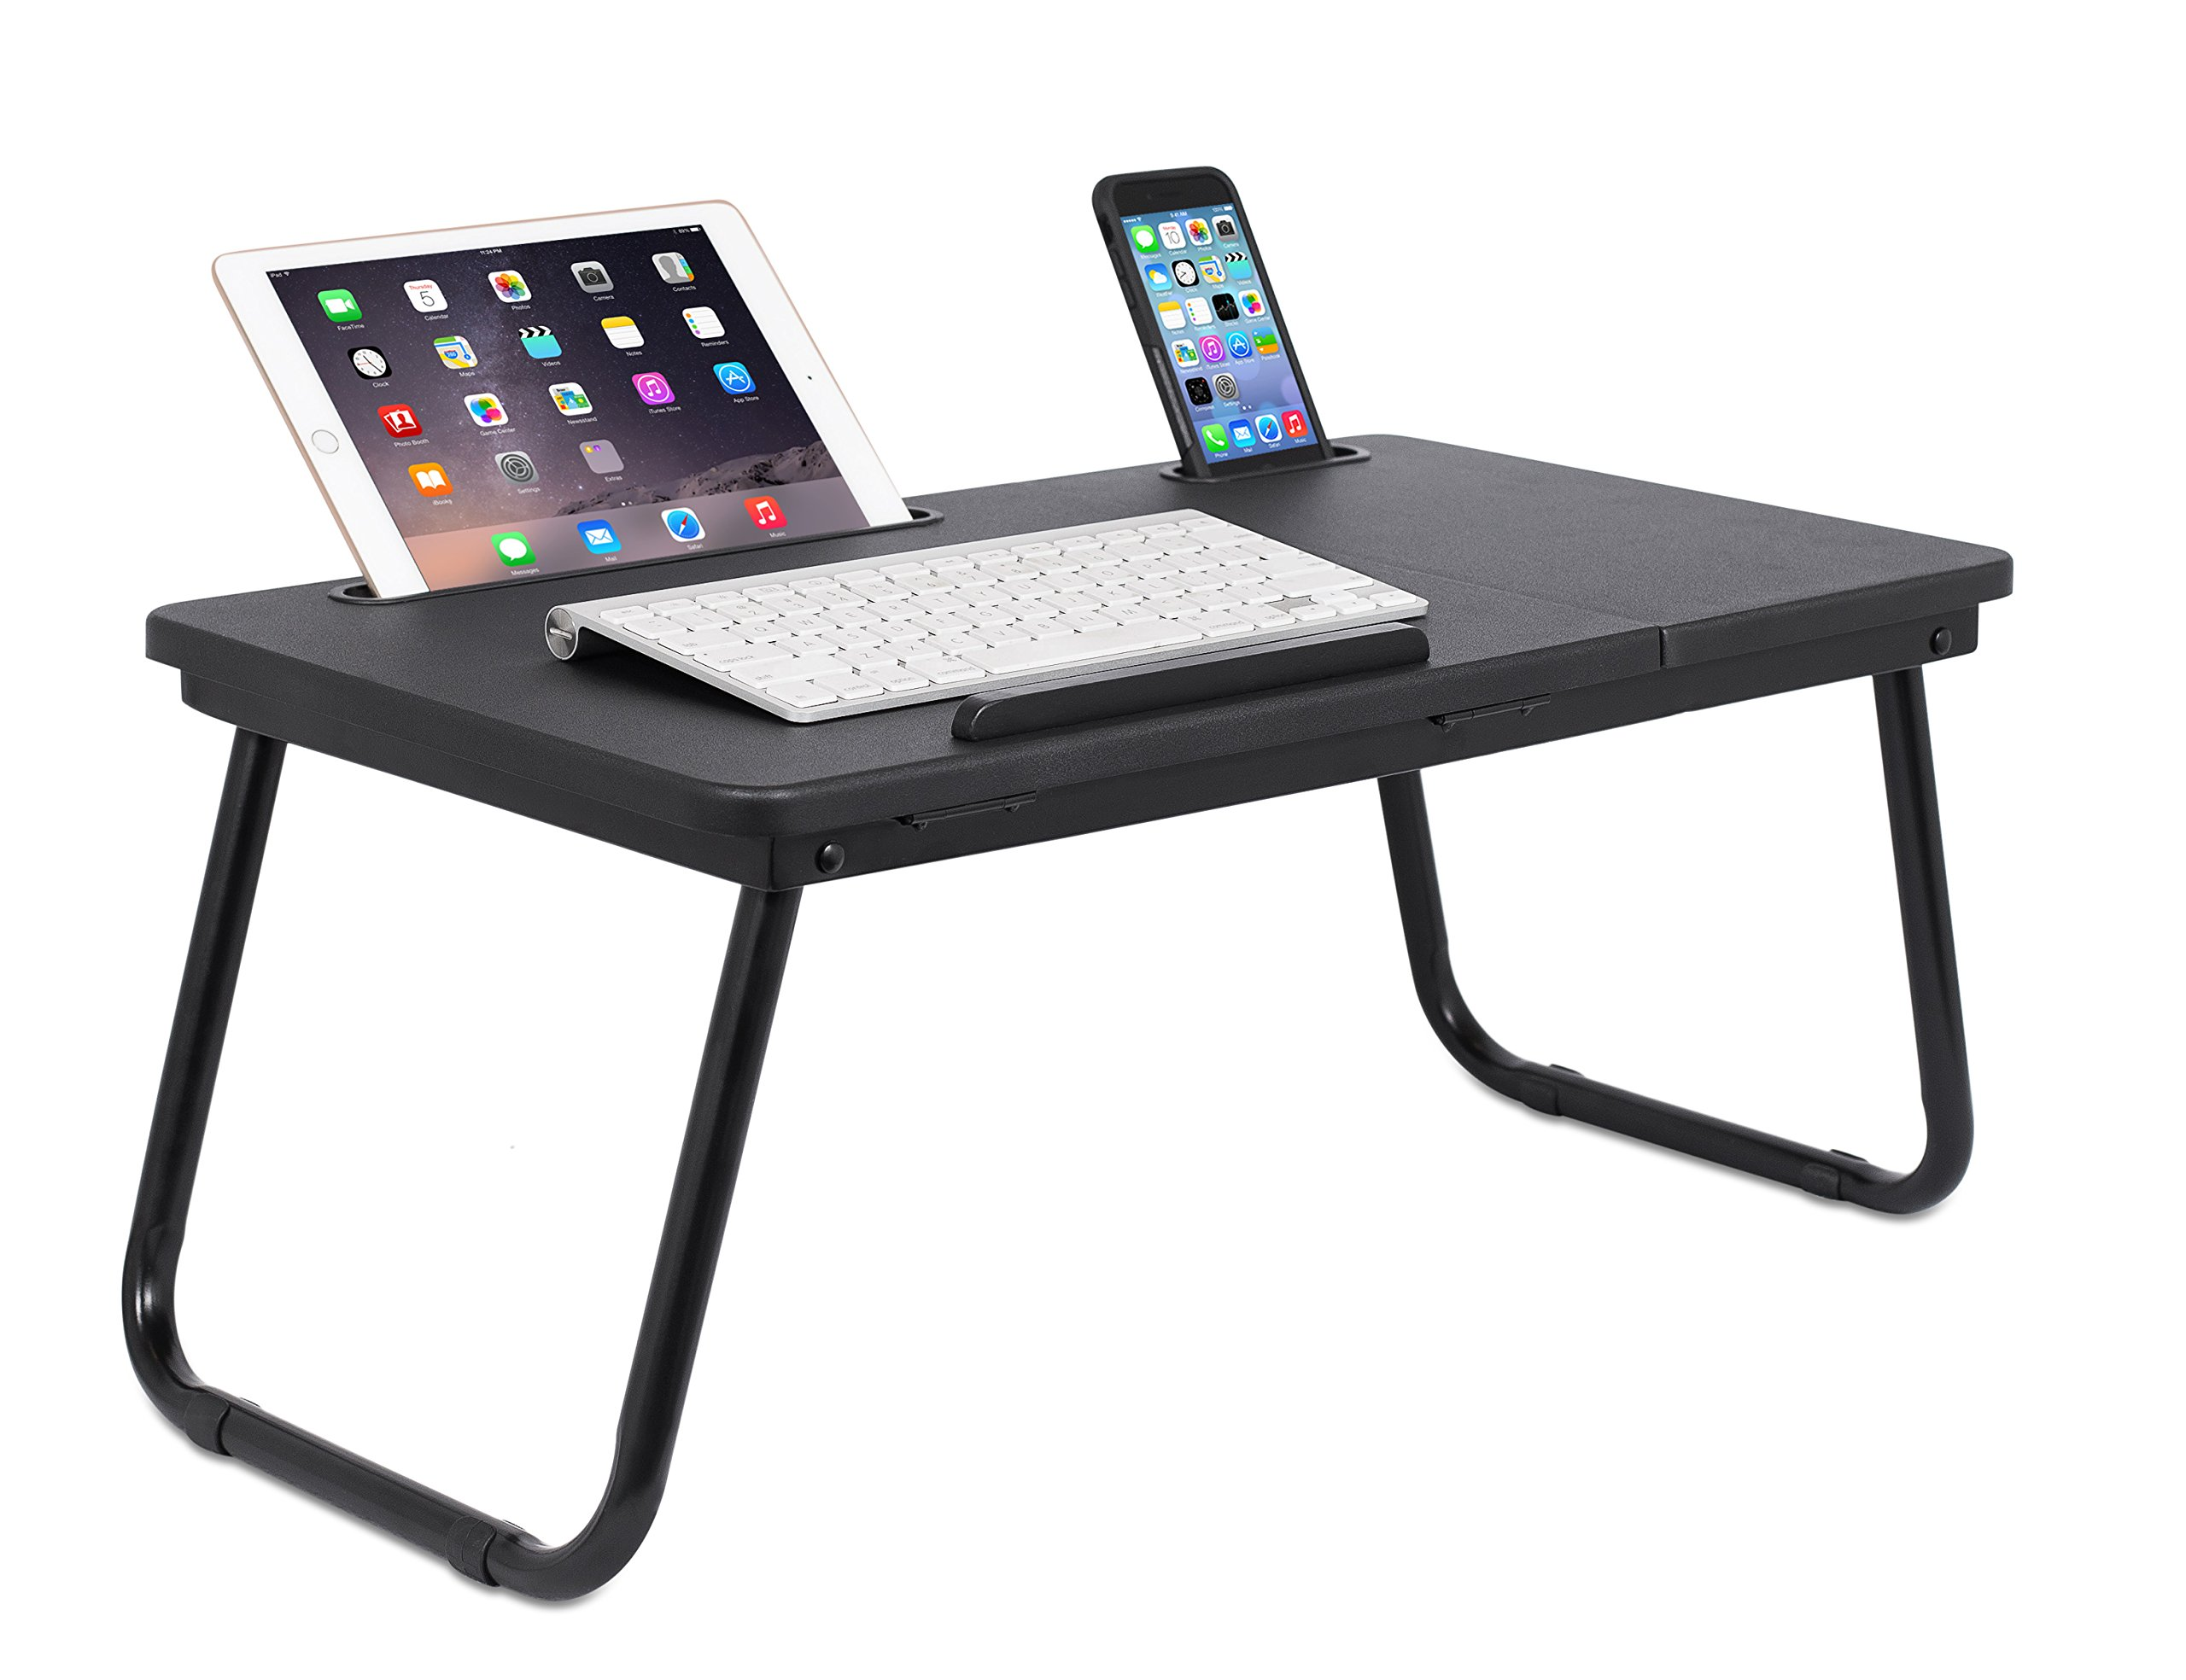 Sofia + Sam Lap Tray with Tablet & Phone Slots | Metal Folding Legs | Lap Desk with Tilting Top | Laptop Stand | Breakfast Serving Bed Tray | Black